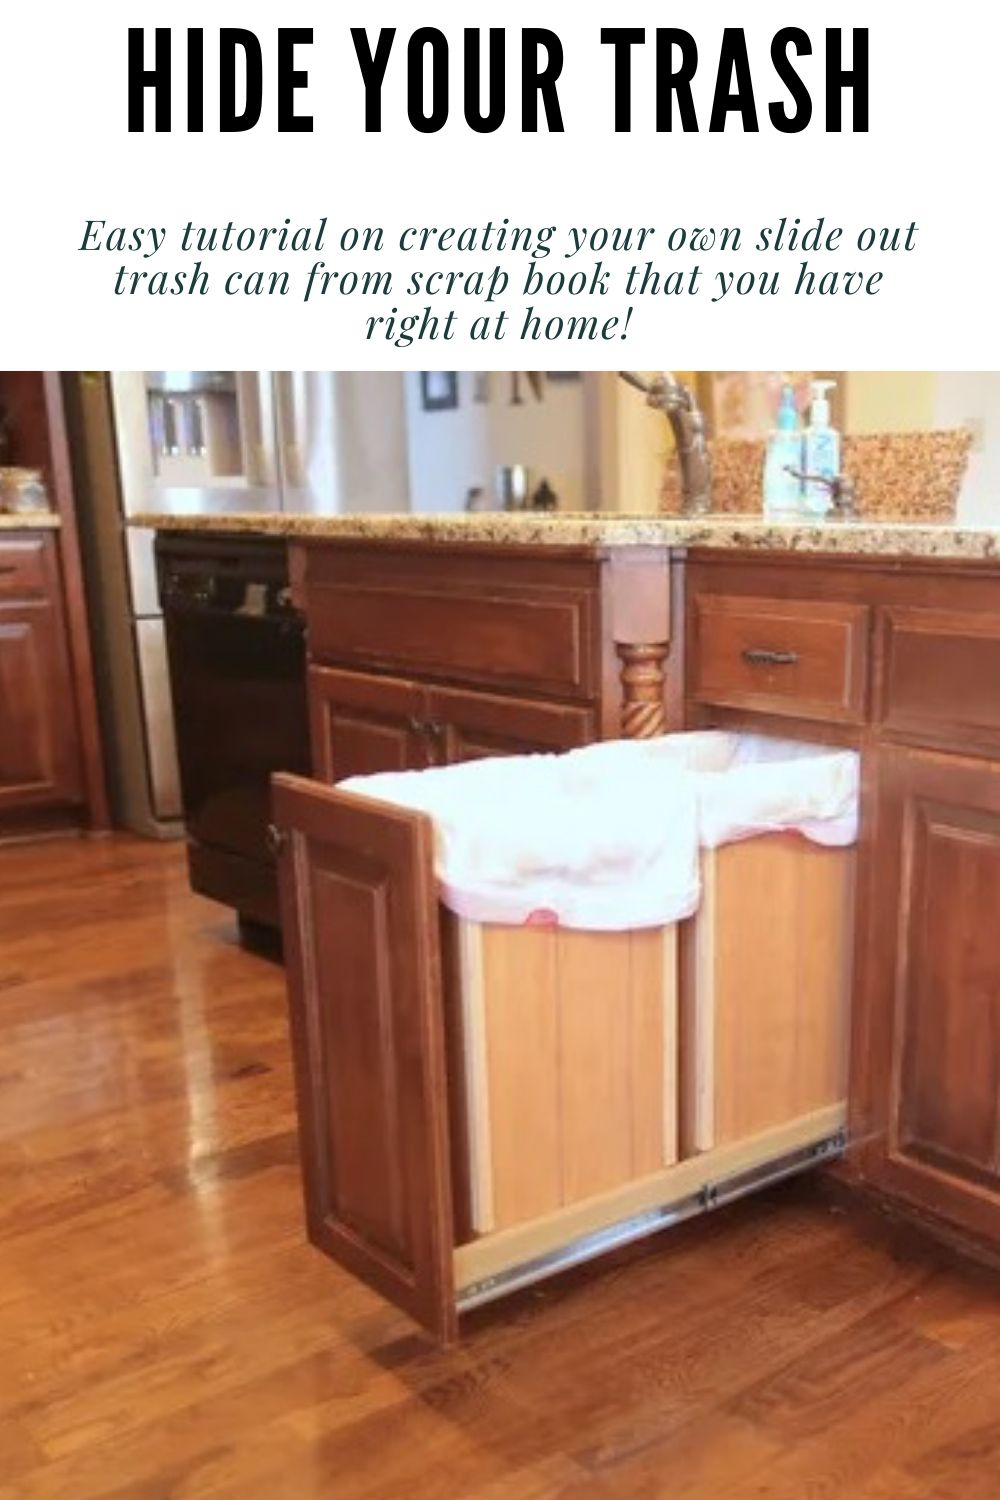 Diy Double Trash Can Cabinet Tutorial With Pictures Step By Step